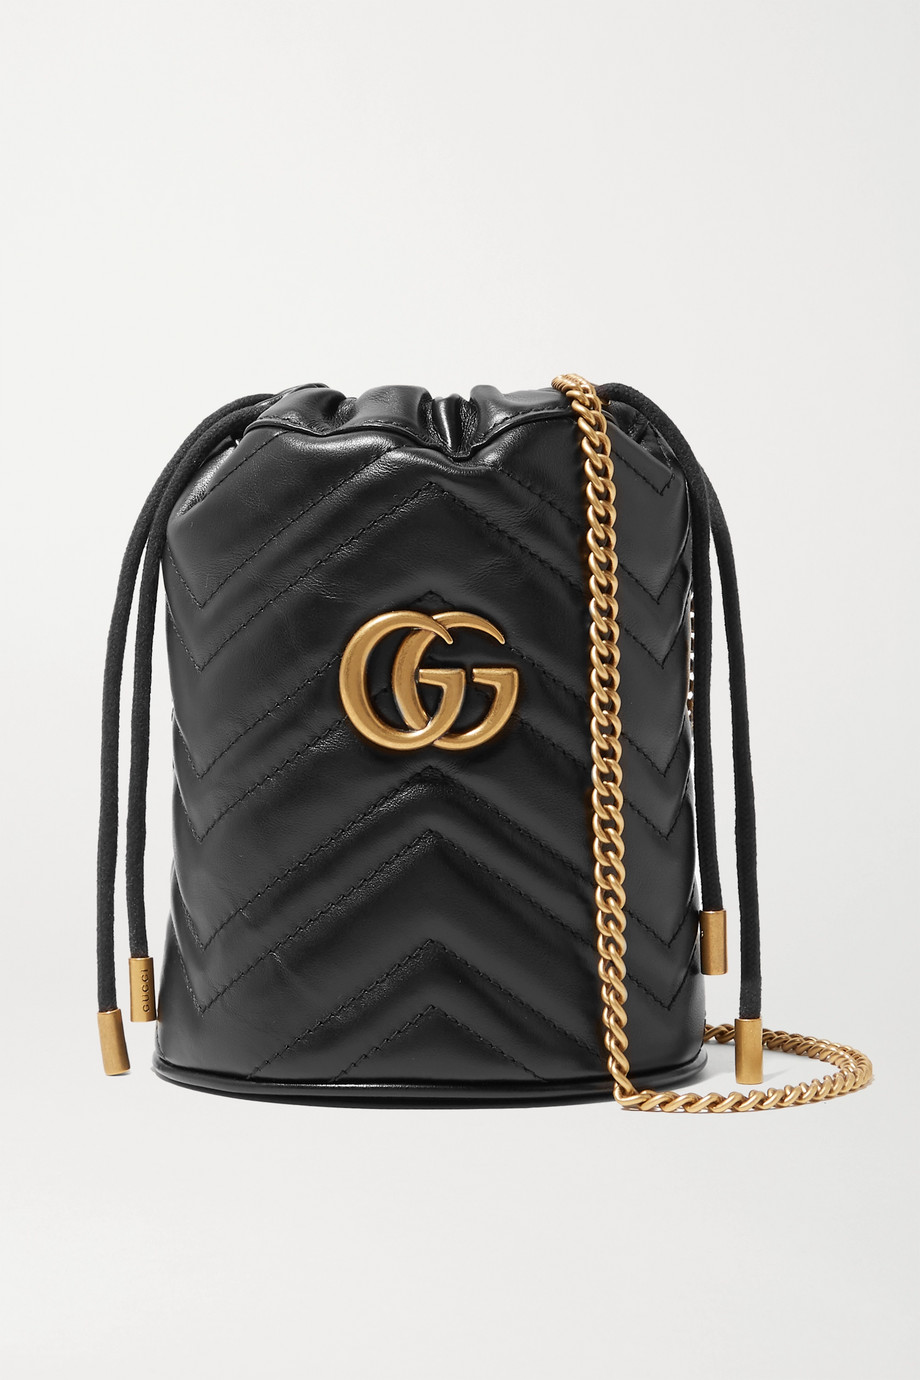 Gucci GG Marmont 绗缝皮革迷你水桶包